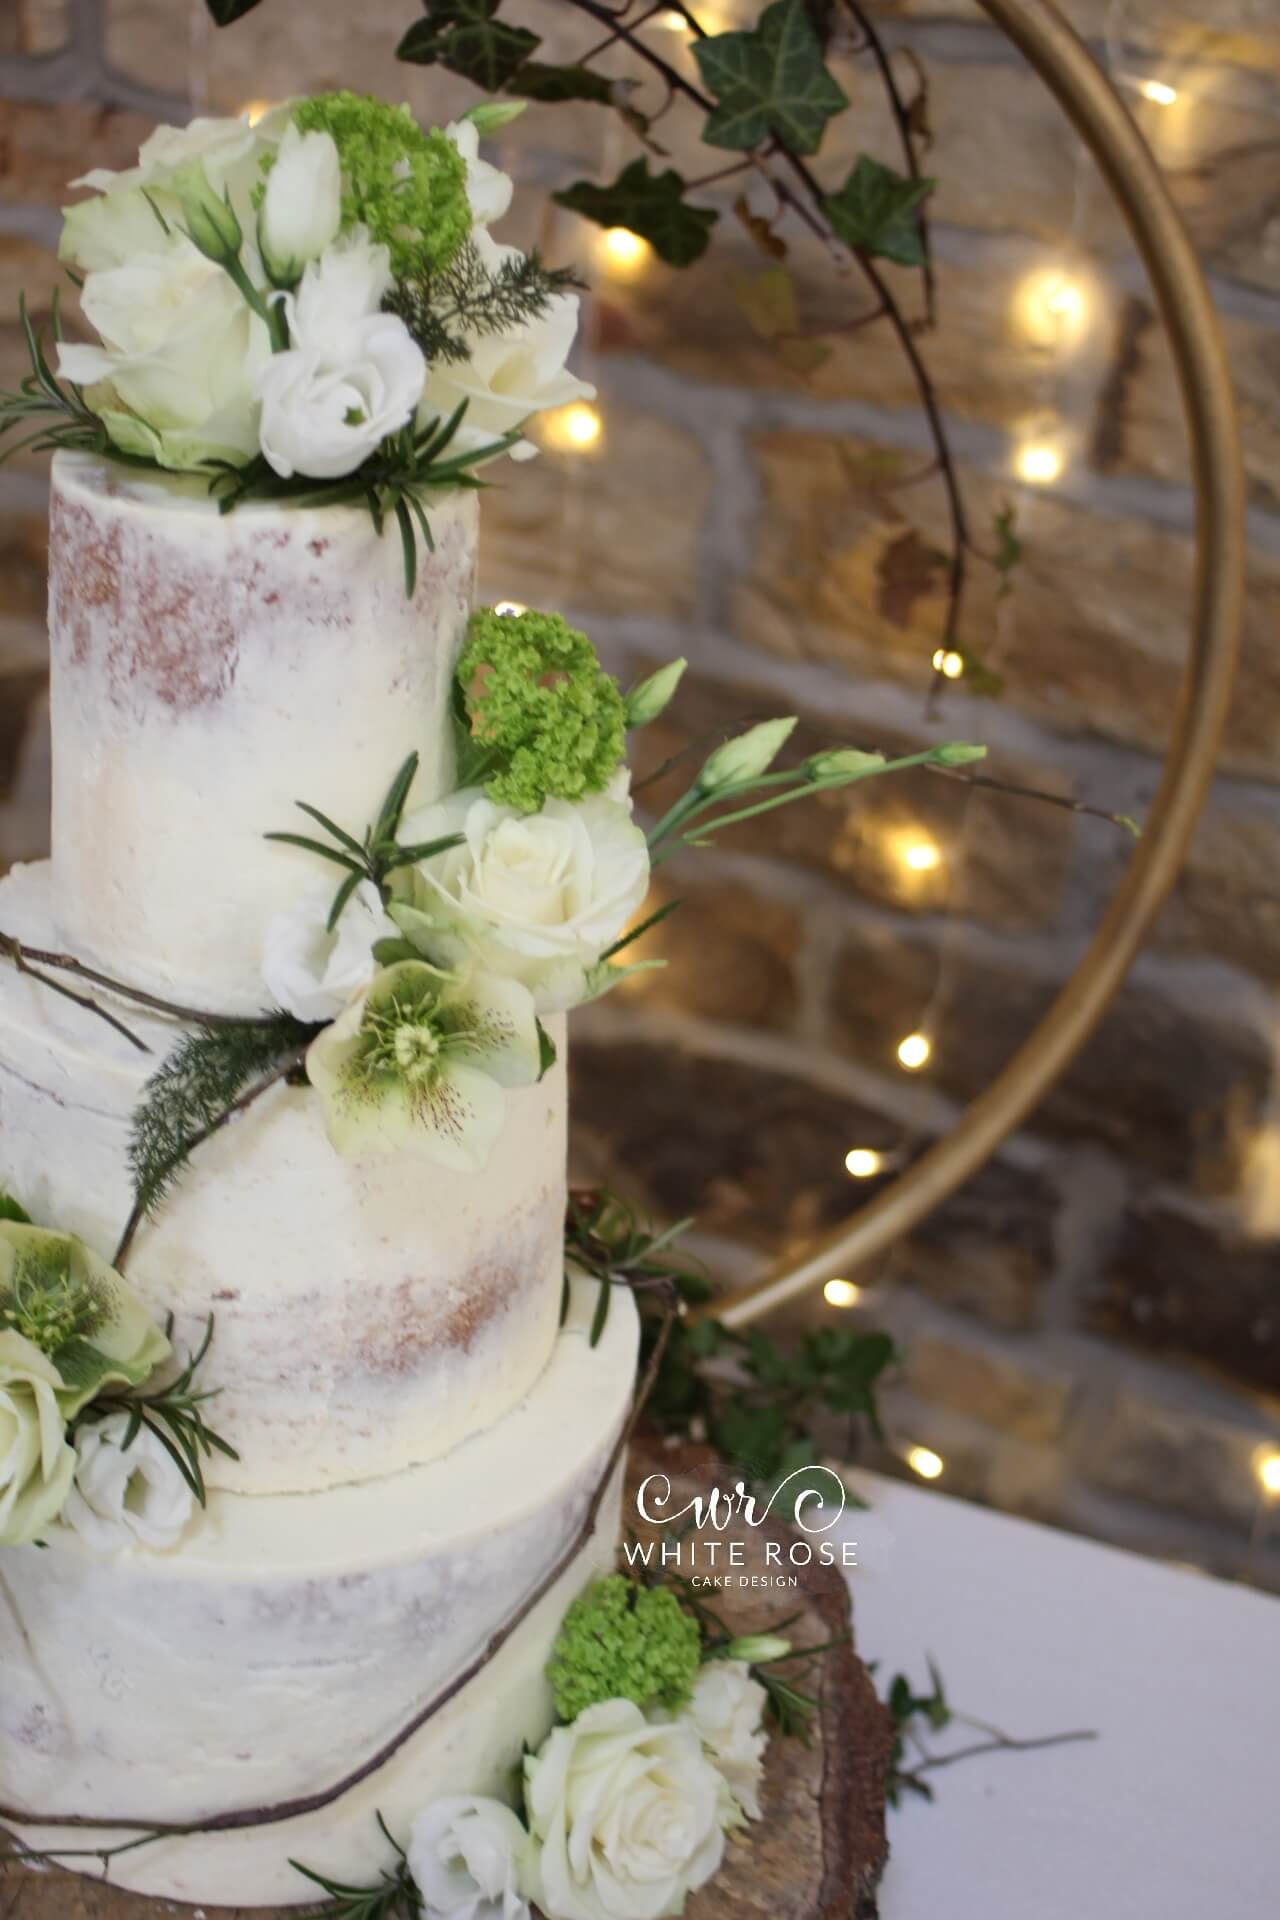 How To Decorate A Wedding Cake With Flowers